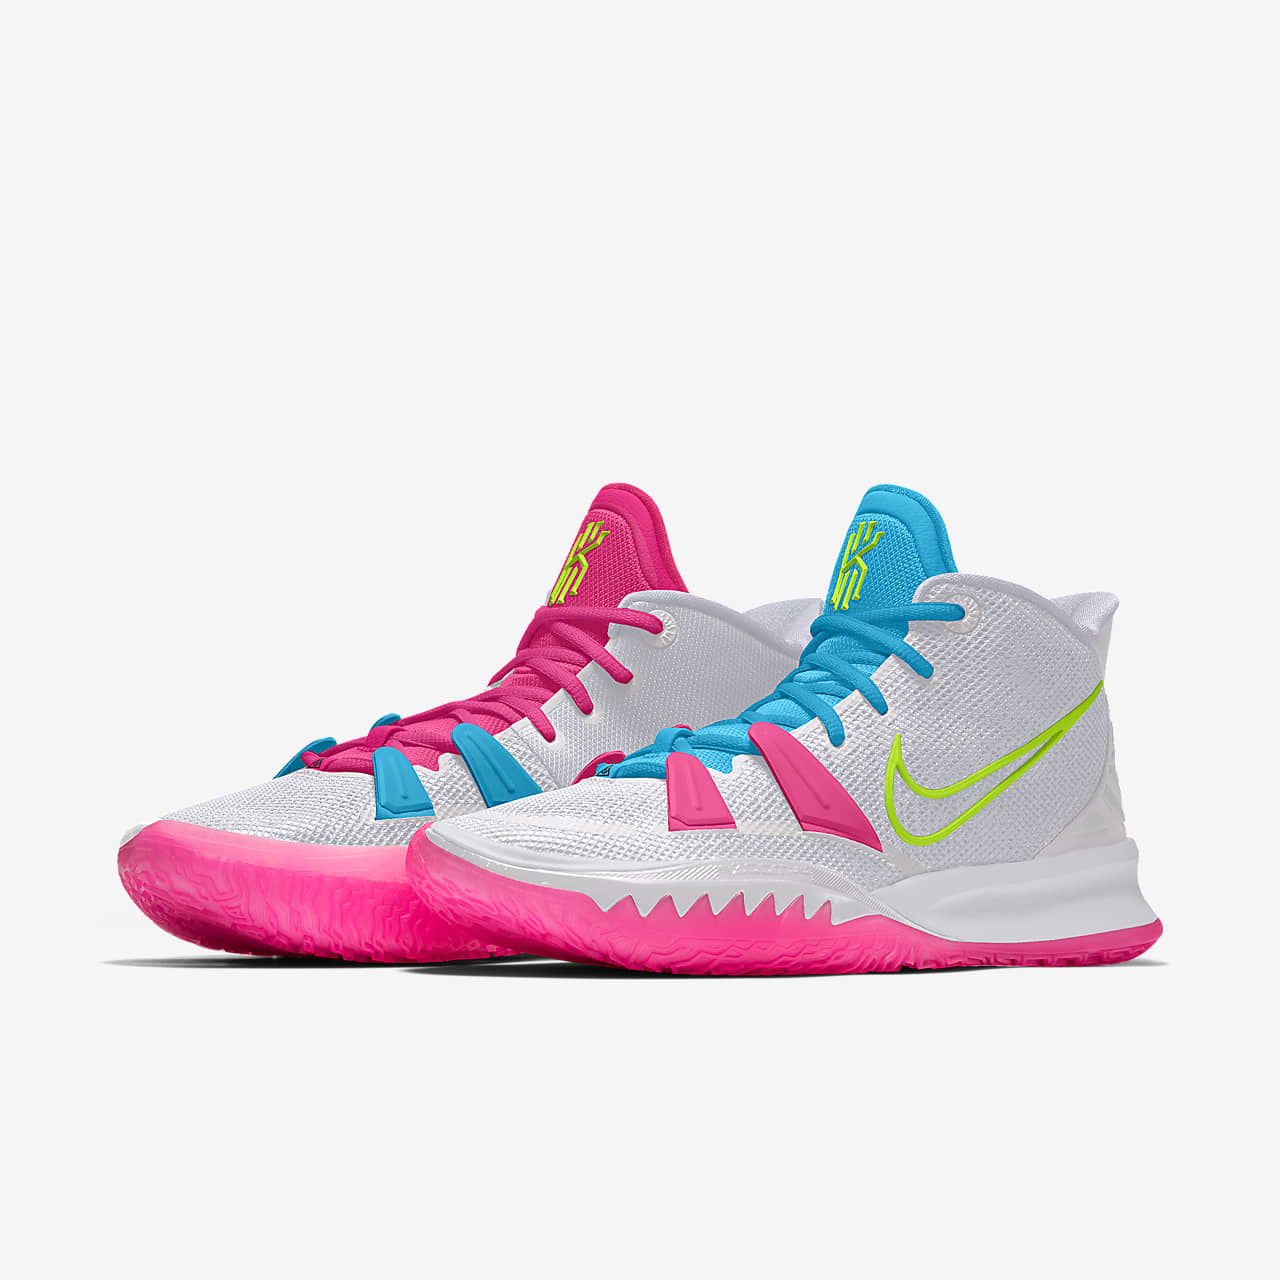 Ennegrecer Rodeo Y así  Kyrie 7 By You Custom Basketball Shoe. Nike.com